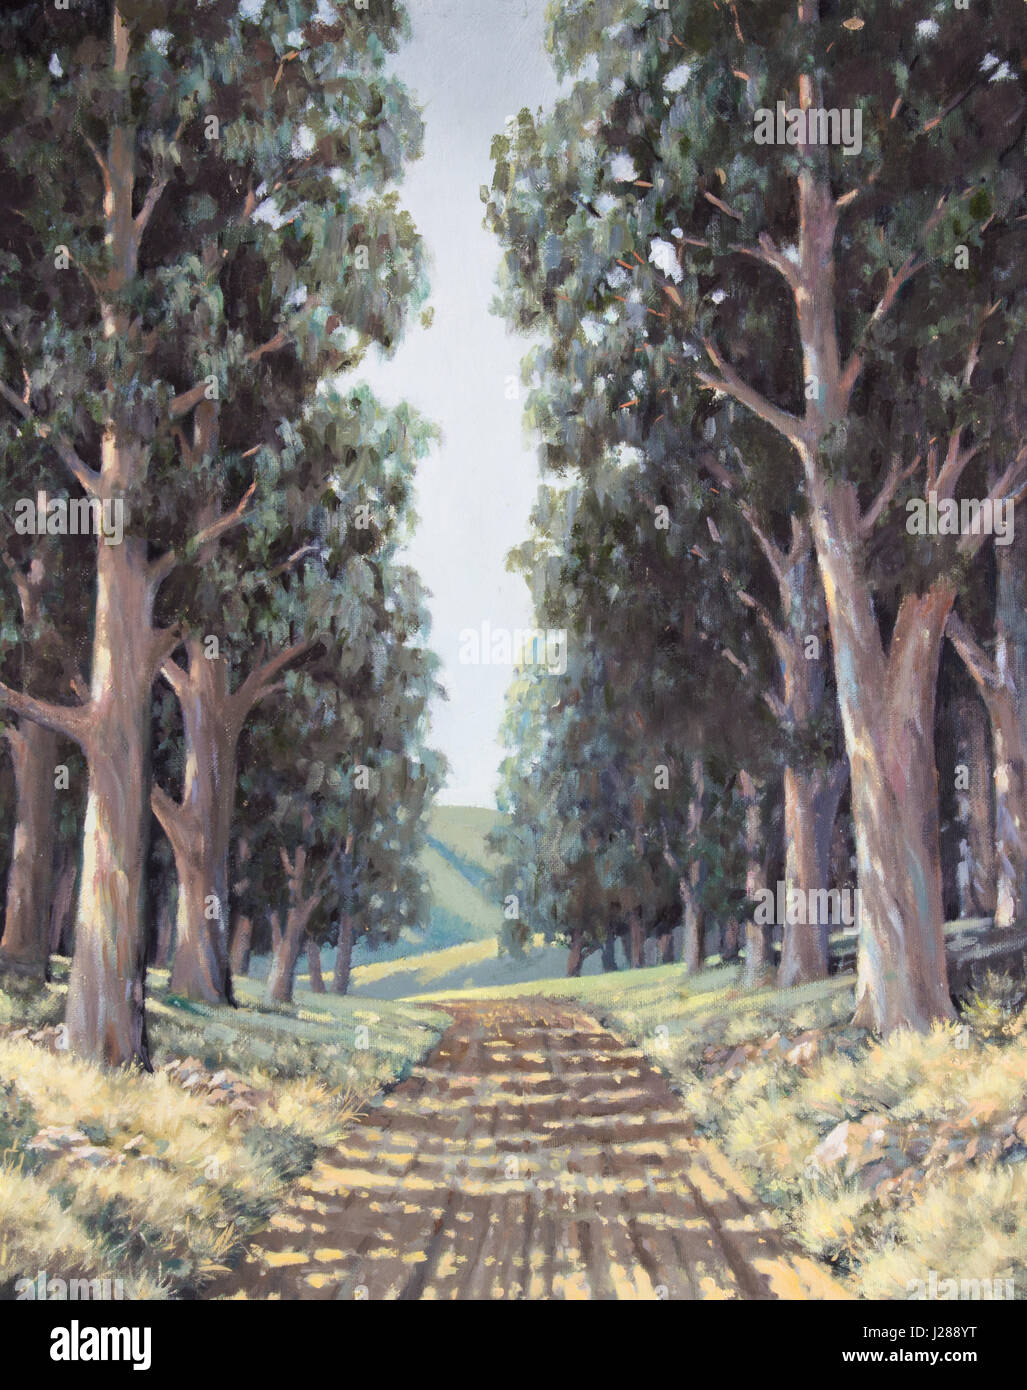 Original oil painting on canvas - Lane of sun-dappled tall eucalyptus trees next to country road in South Africa - Stock Image